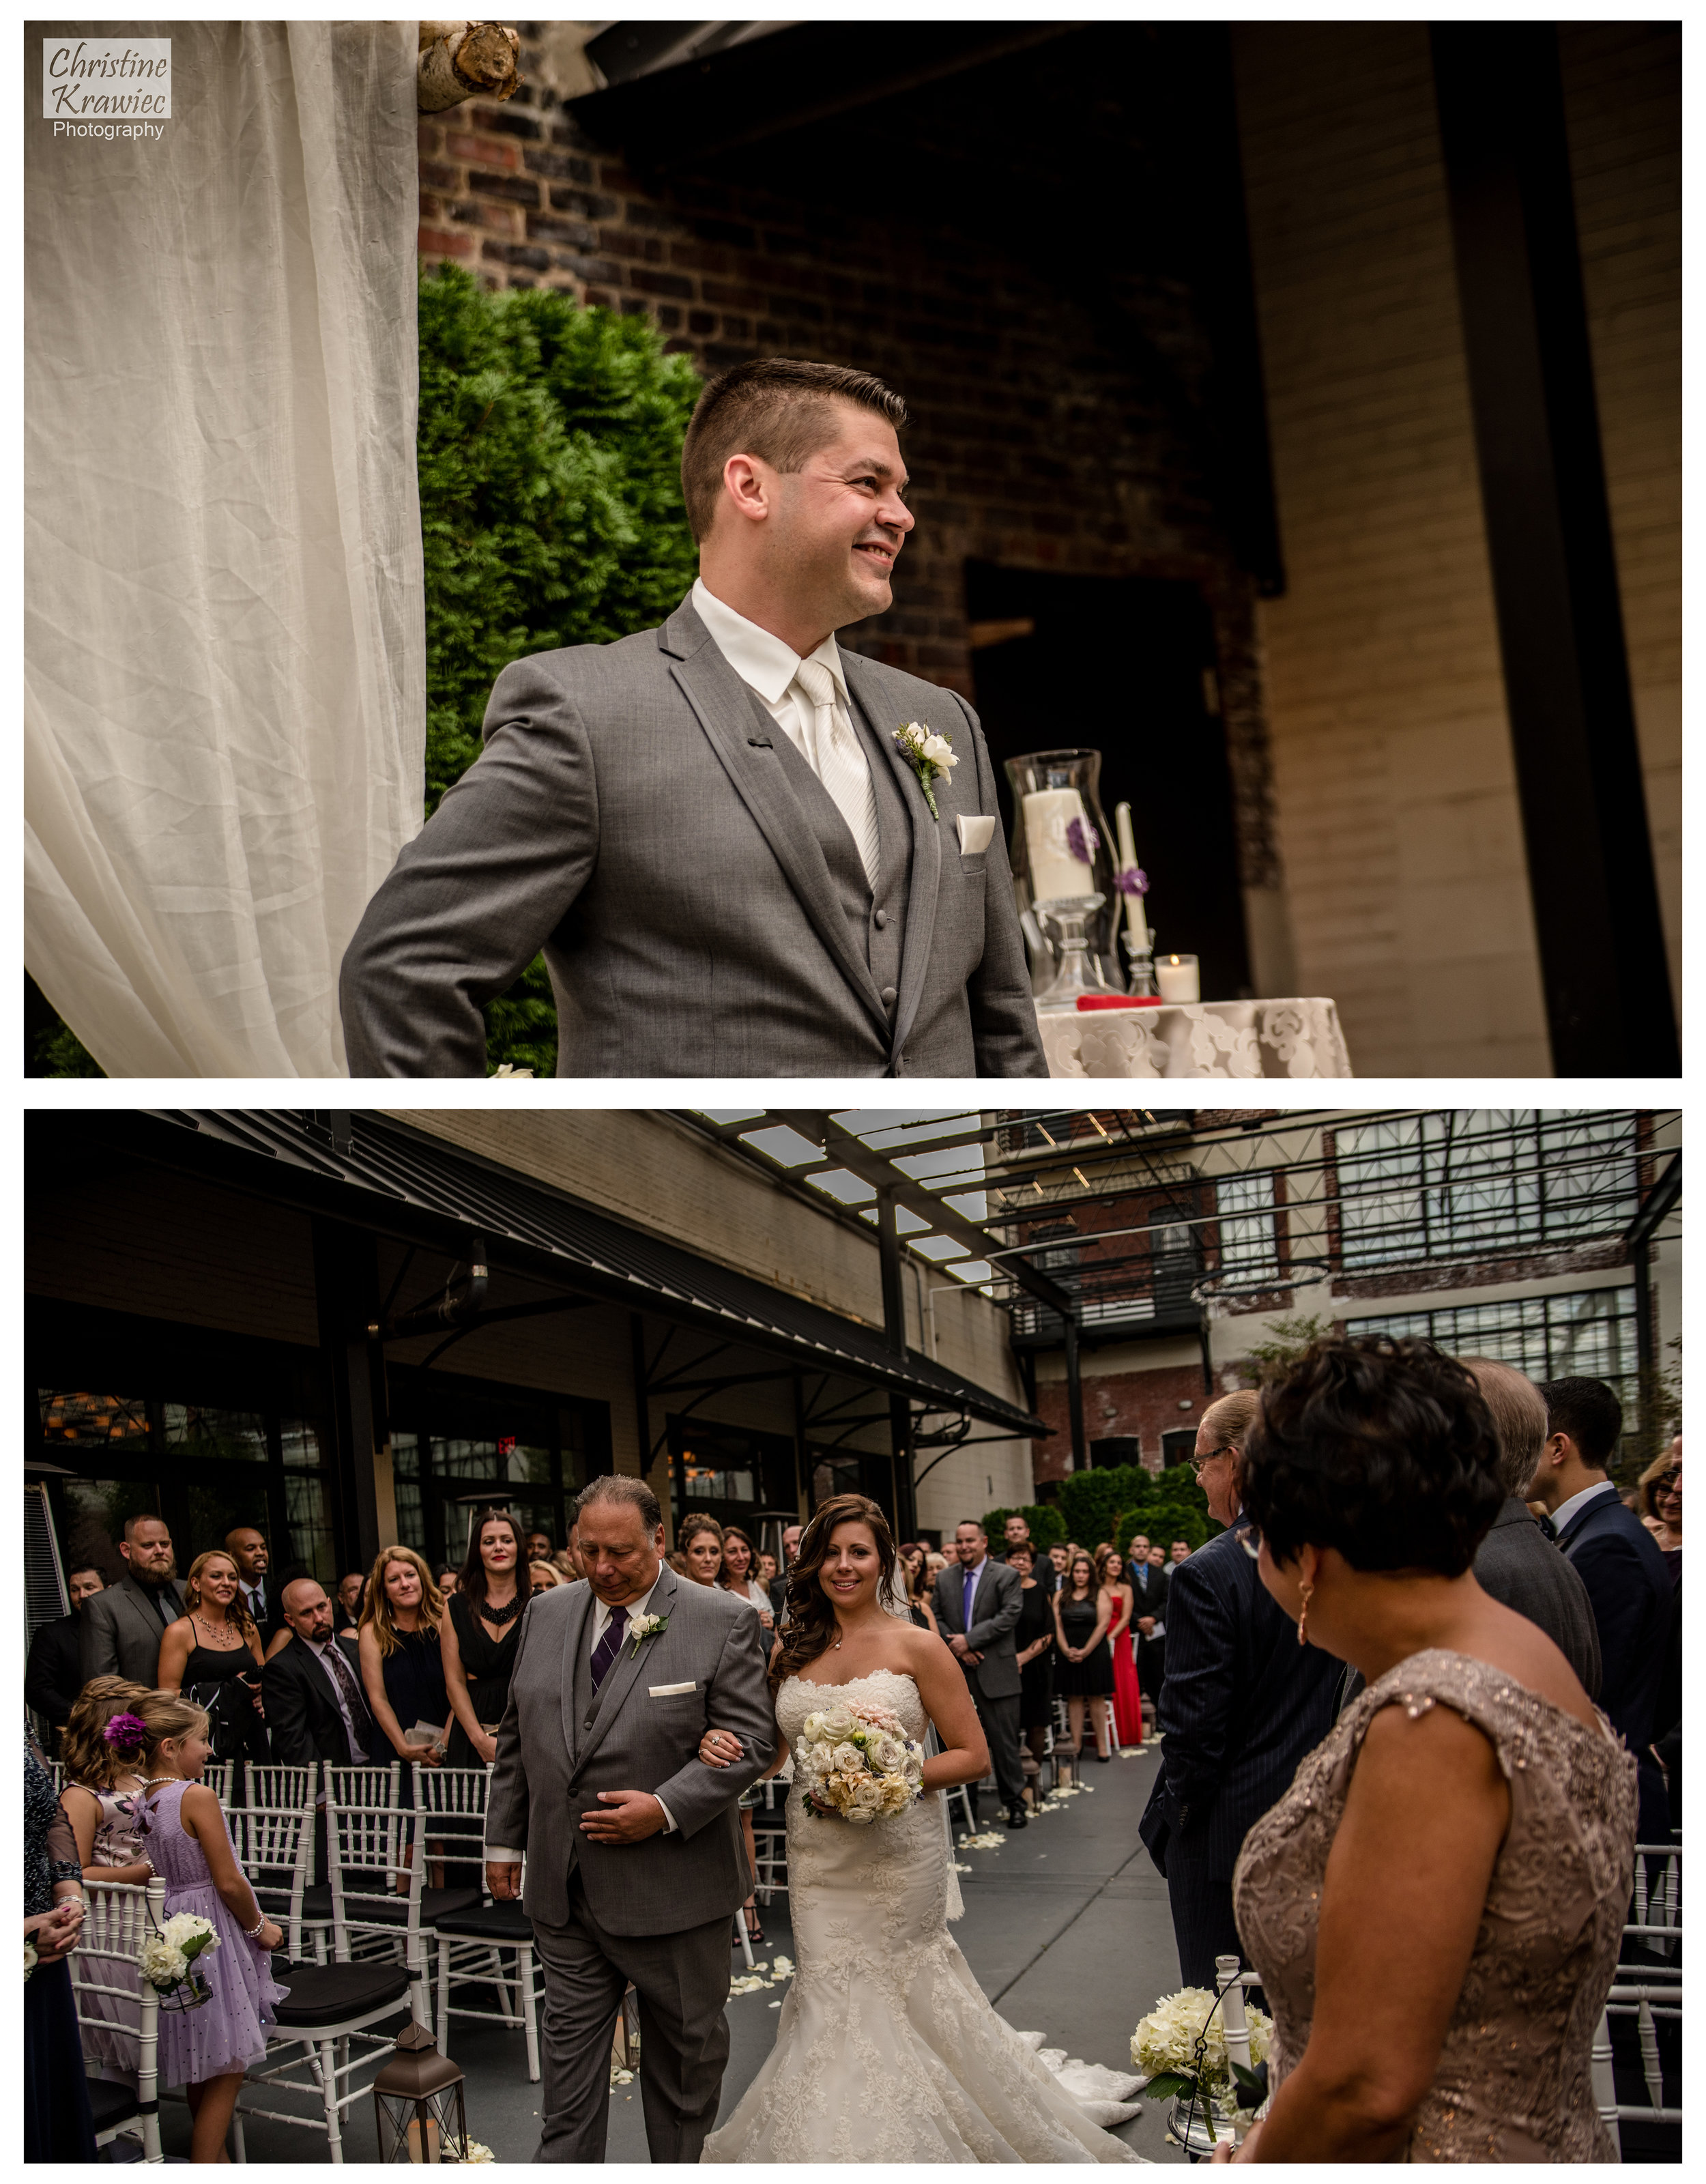 Mike watching his one of a kind bride make her way down the aisle.  I love the glance Lauren shares with her mom